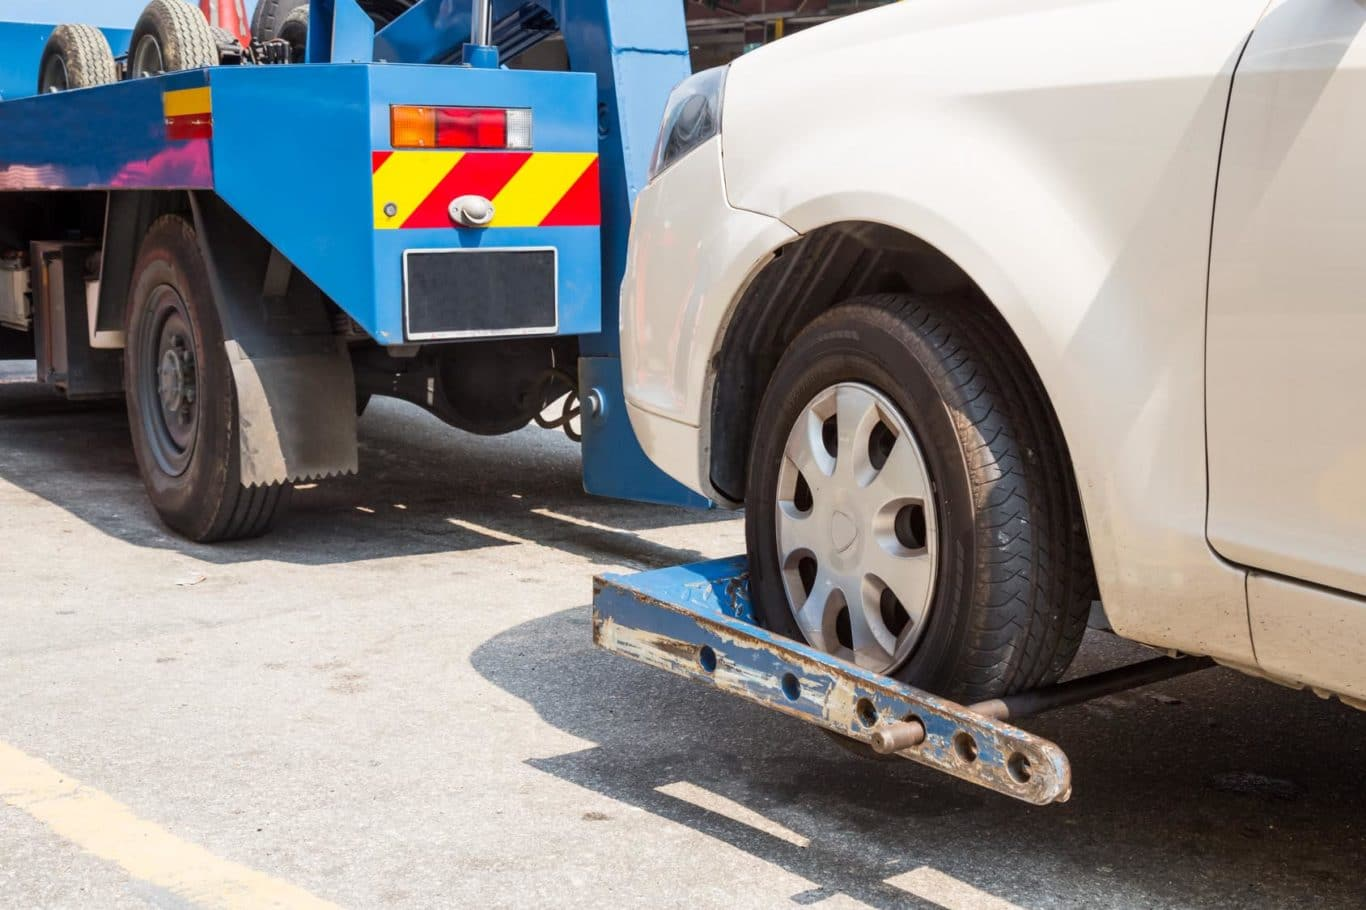 Dundrum expert Wrong Fuel Recovery services